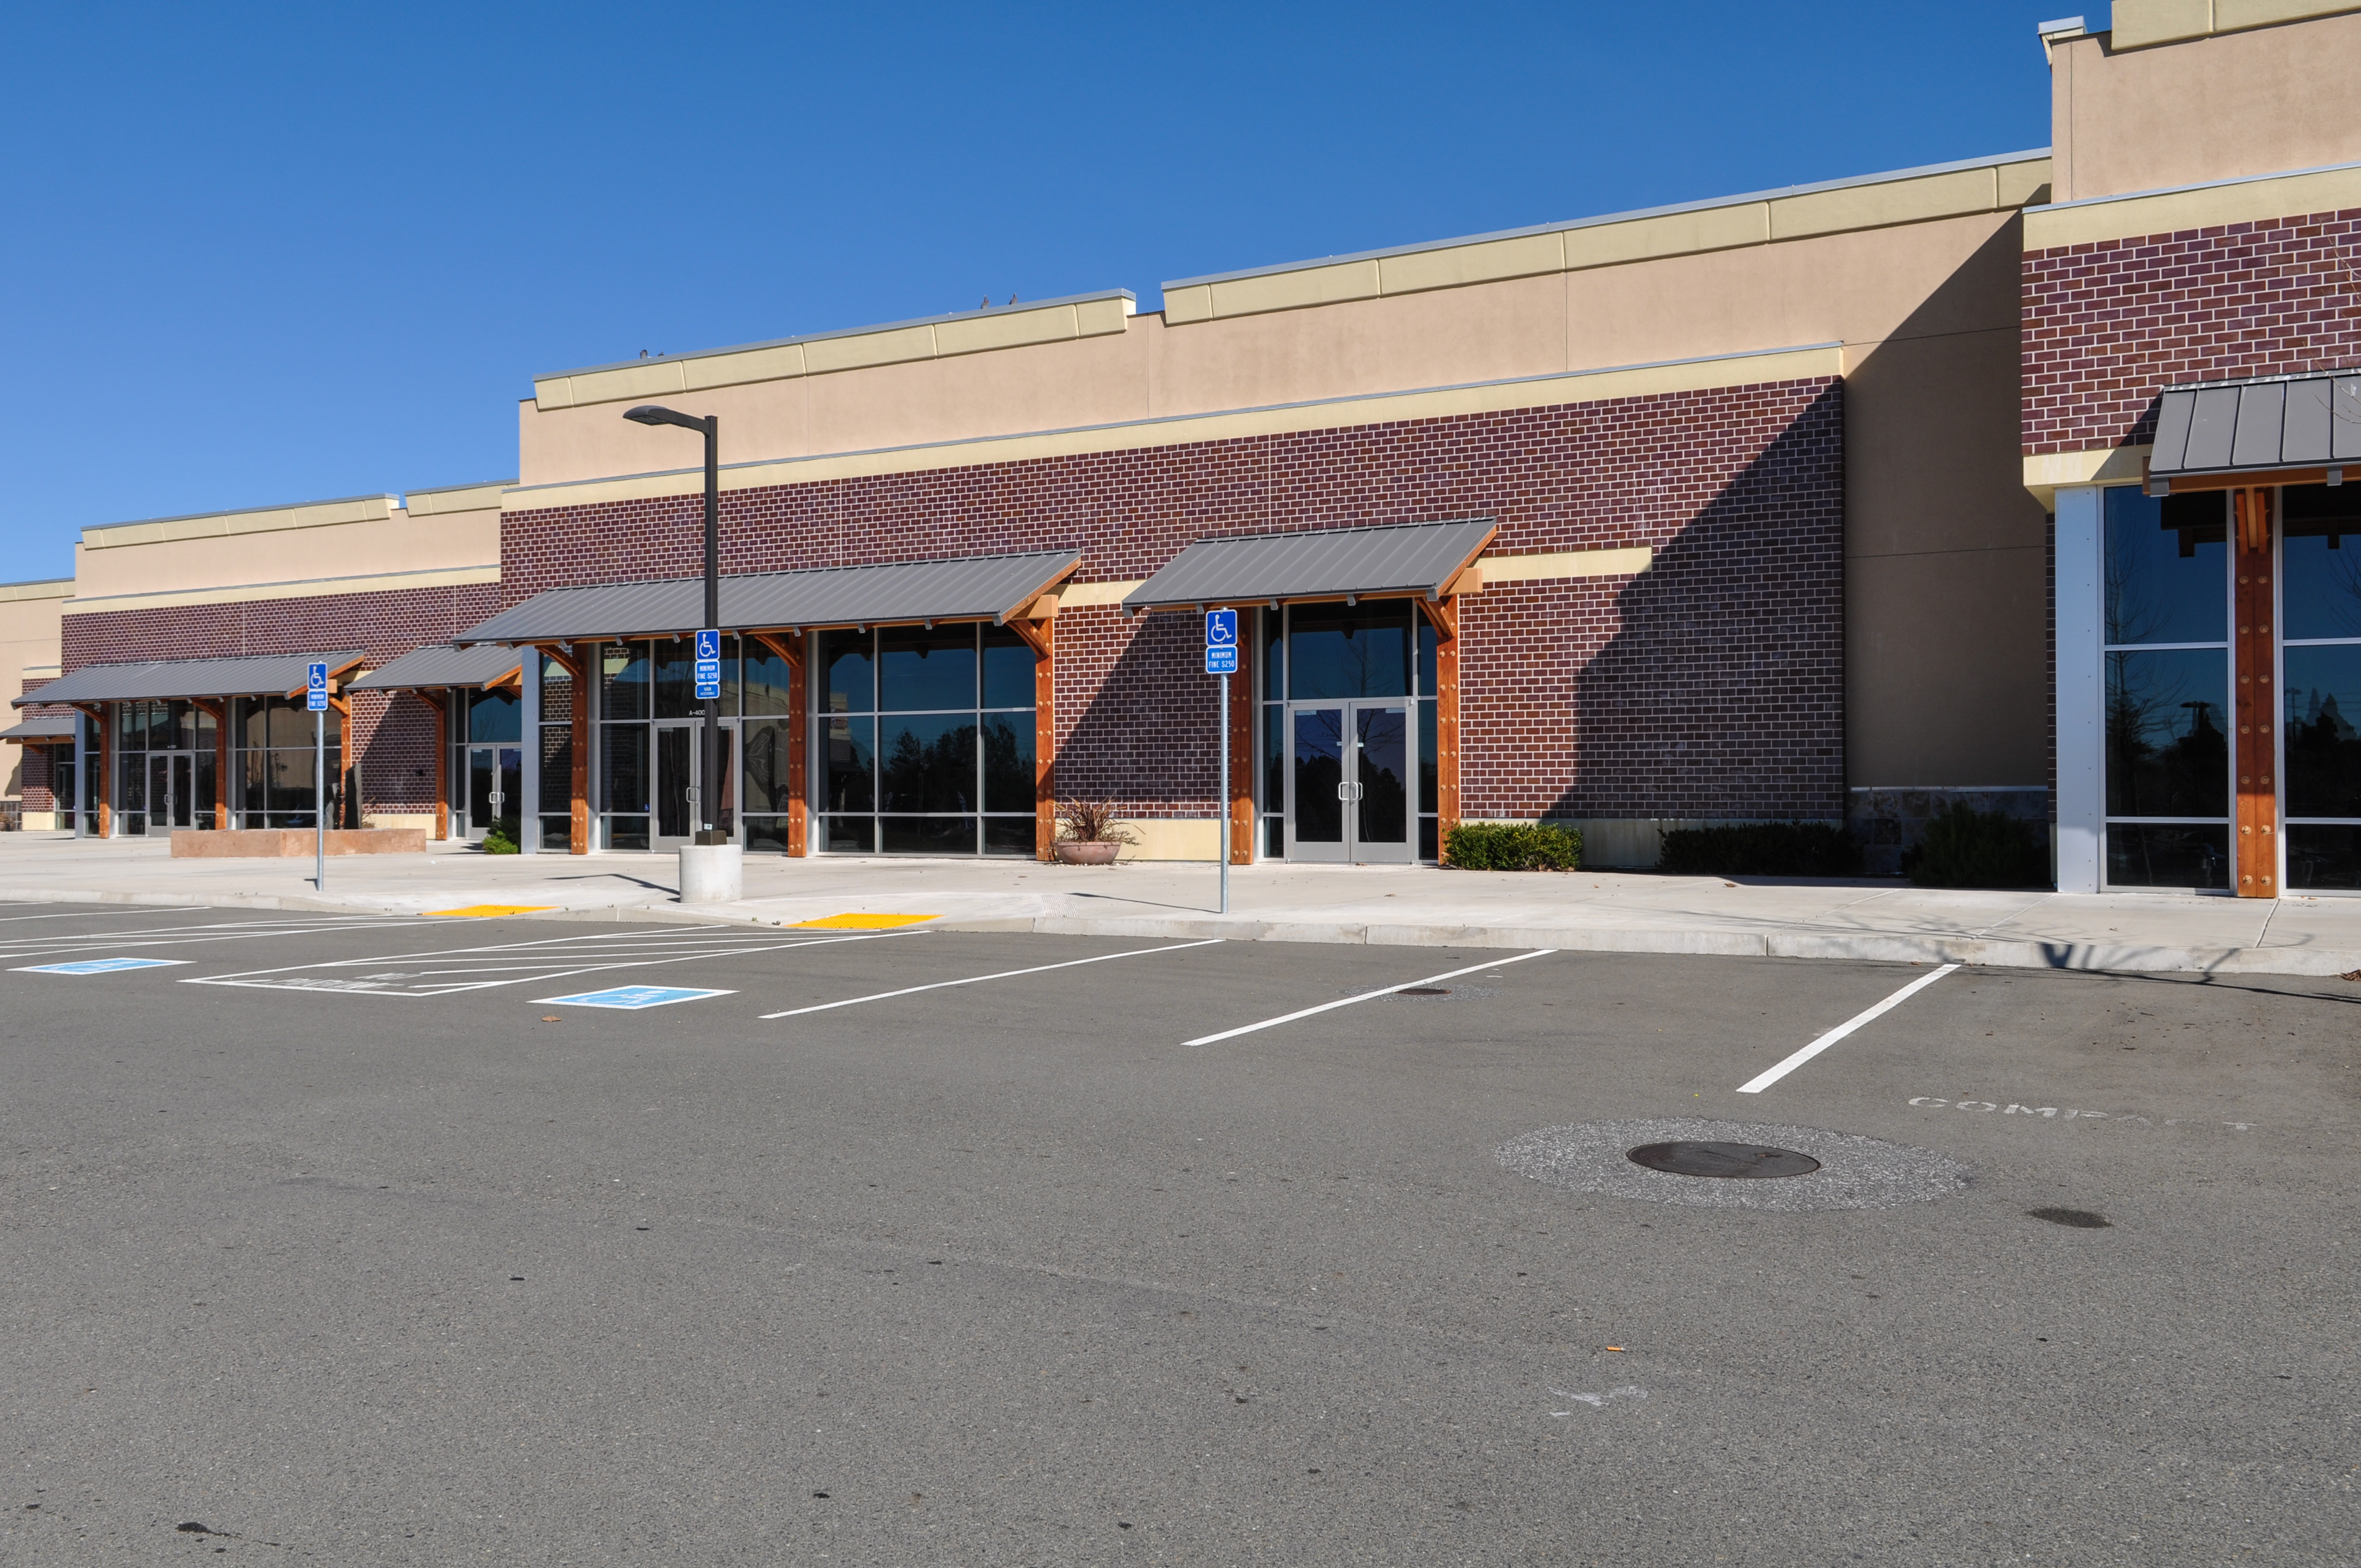 Superior Glass Commercial Storefront Windows in Phoenix AZ